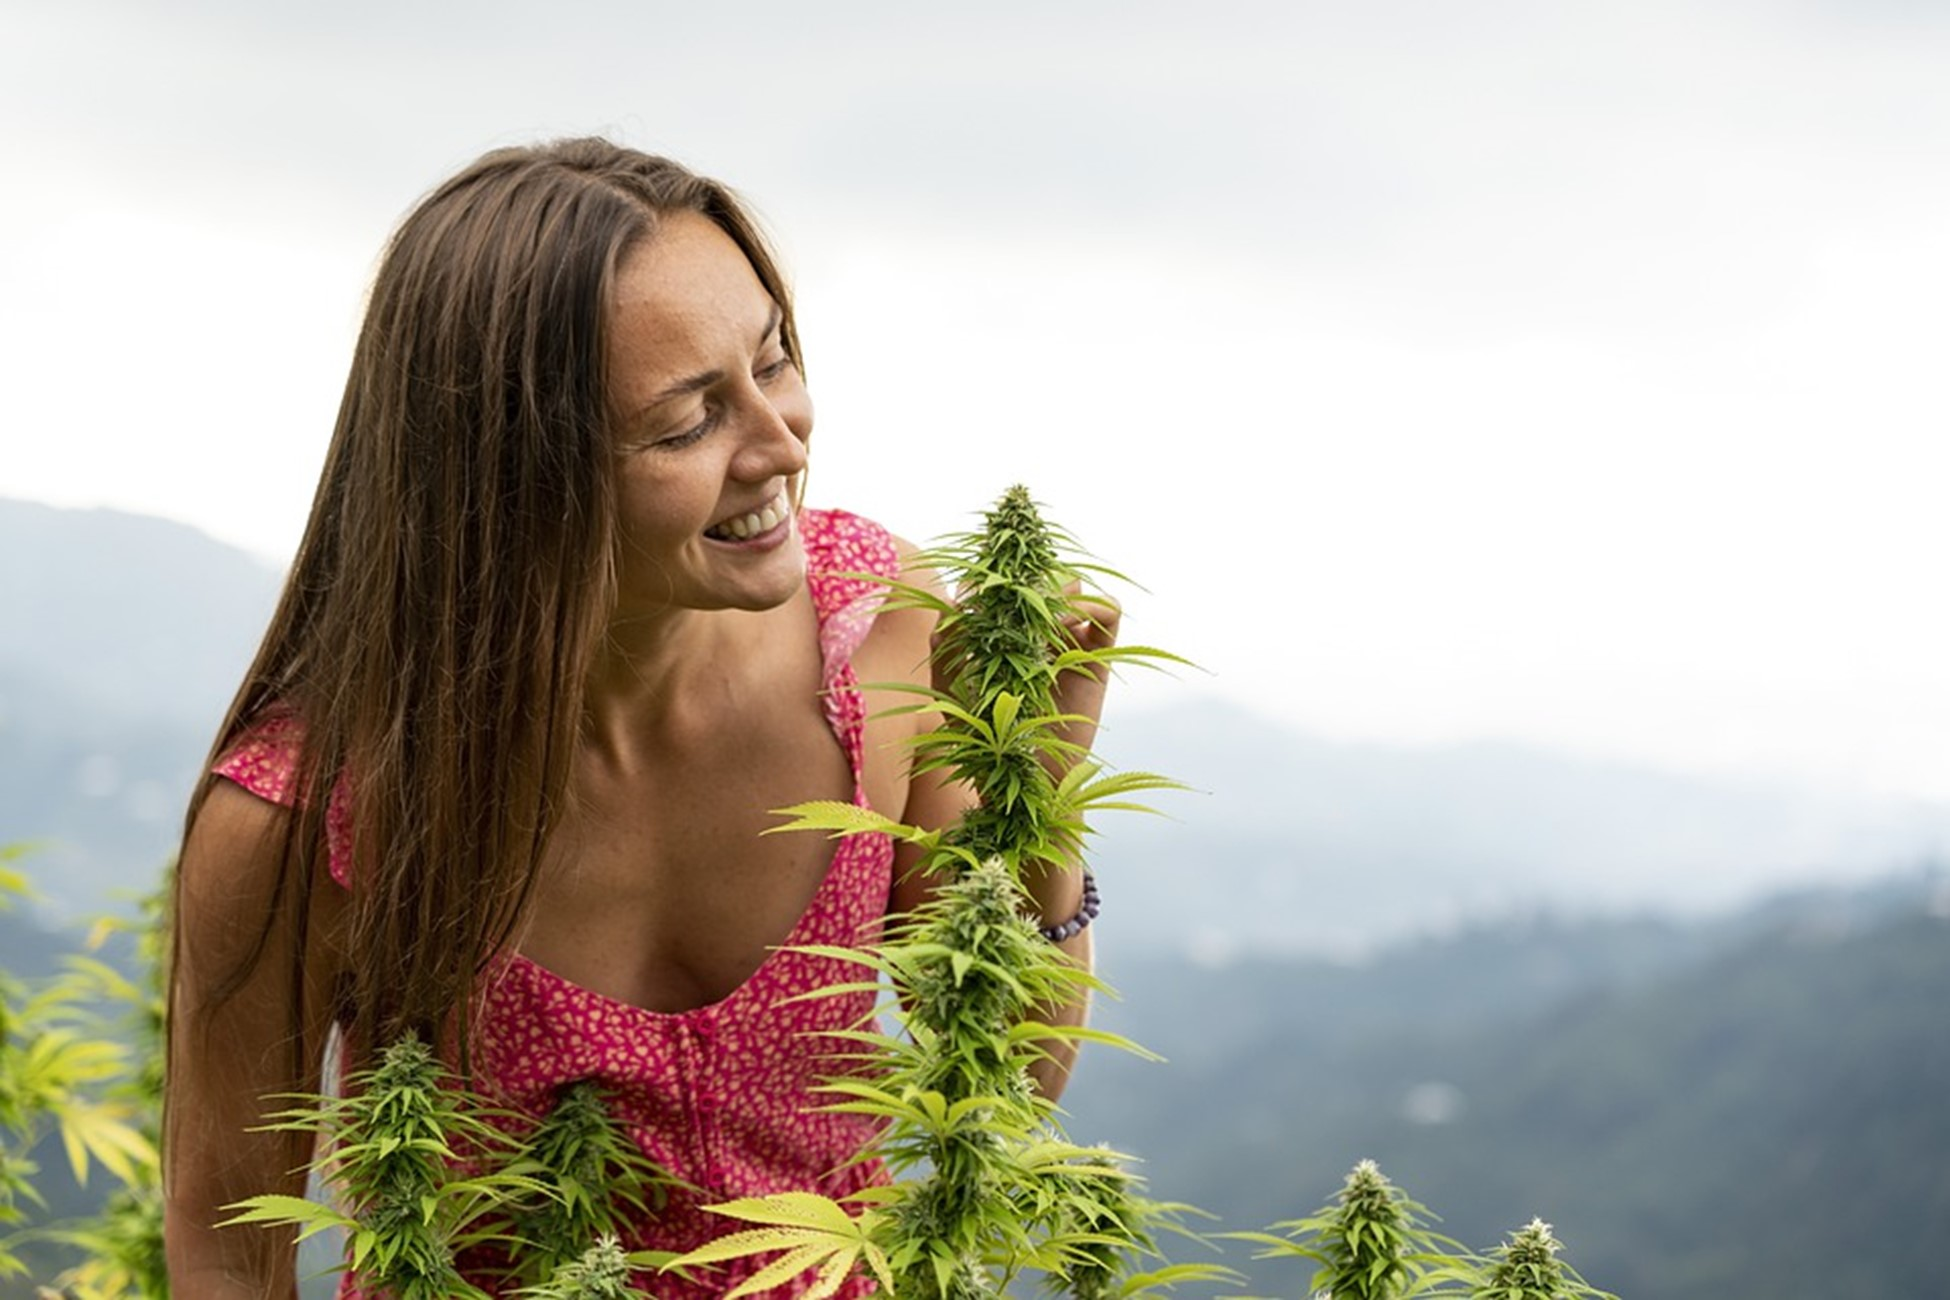 Woman harvesting cannabis plant for CBD production